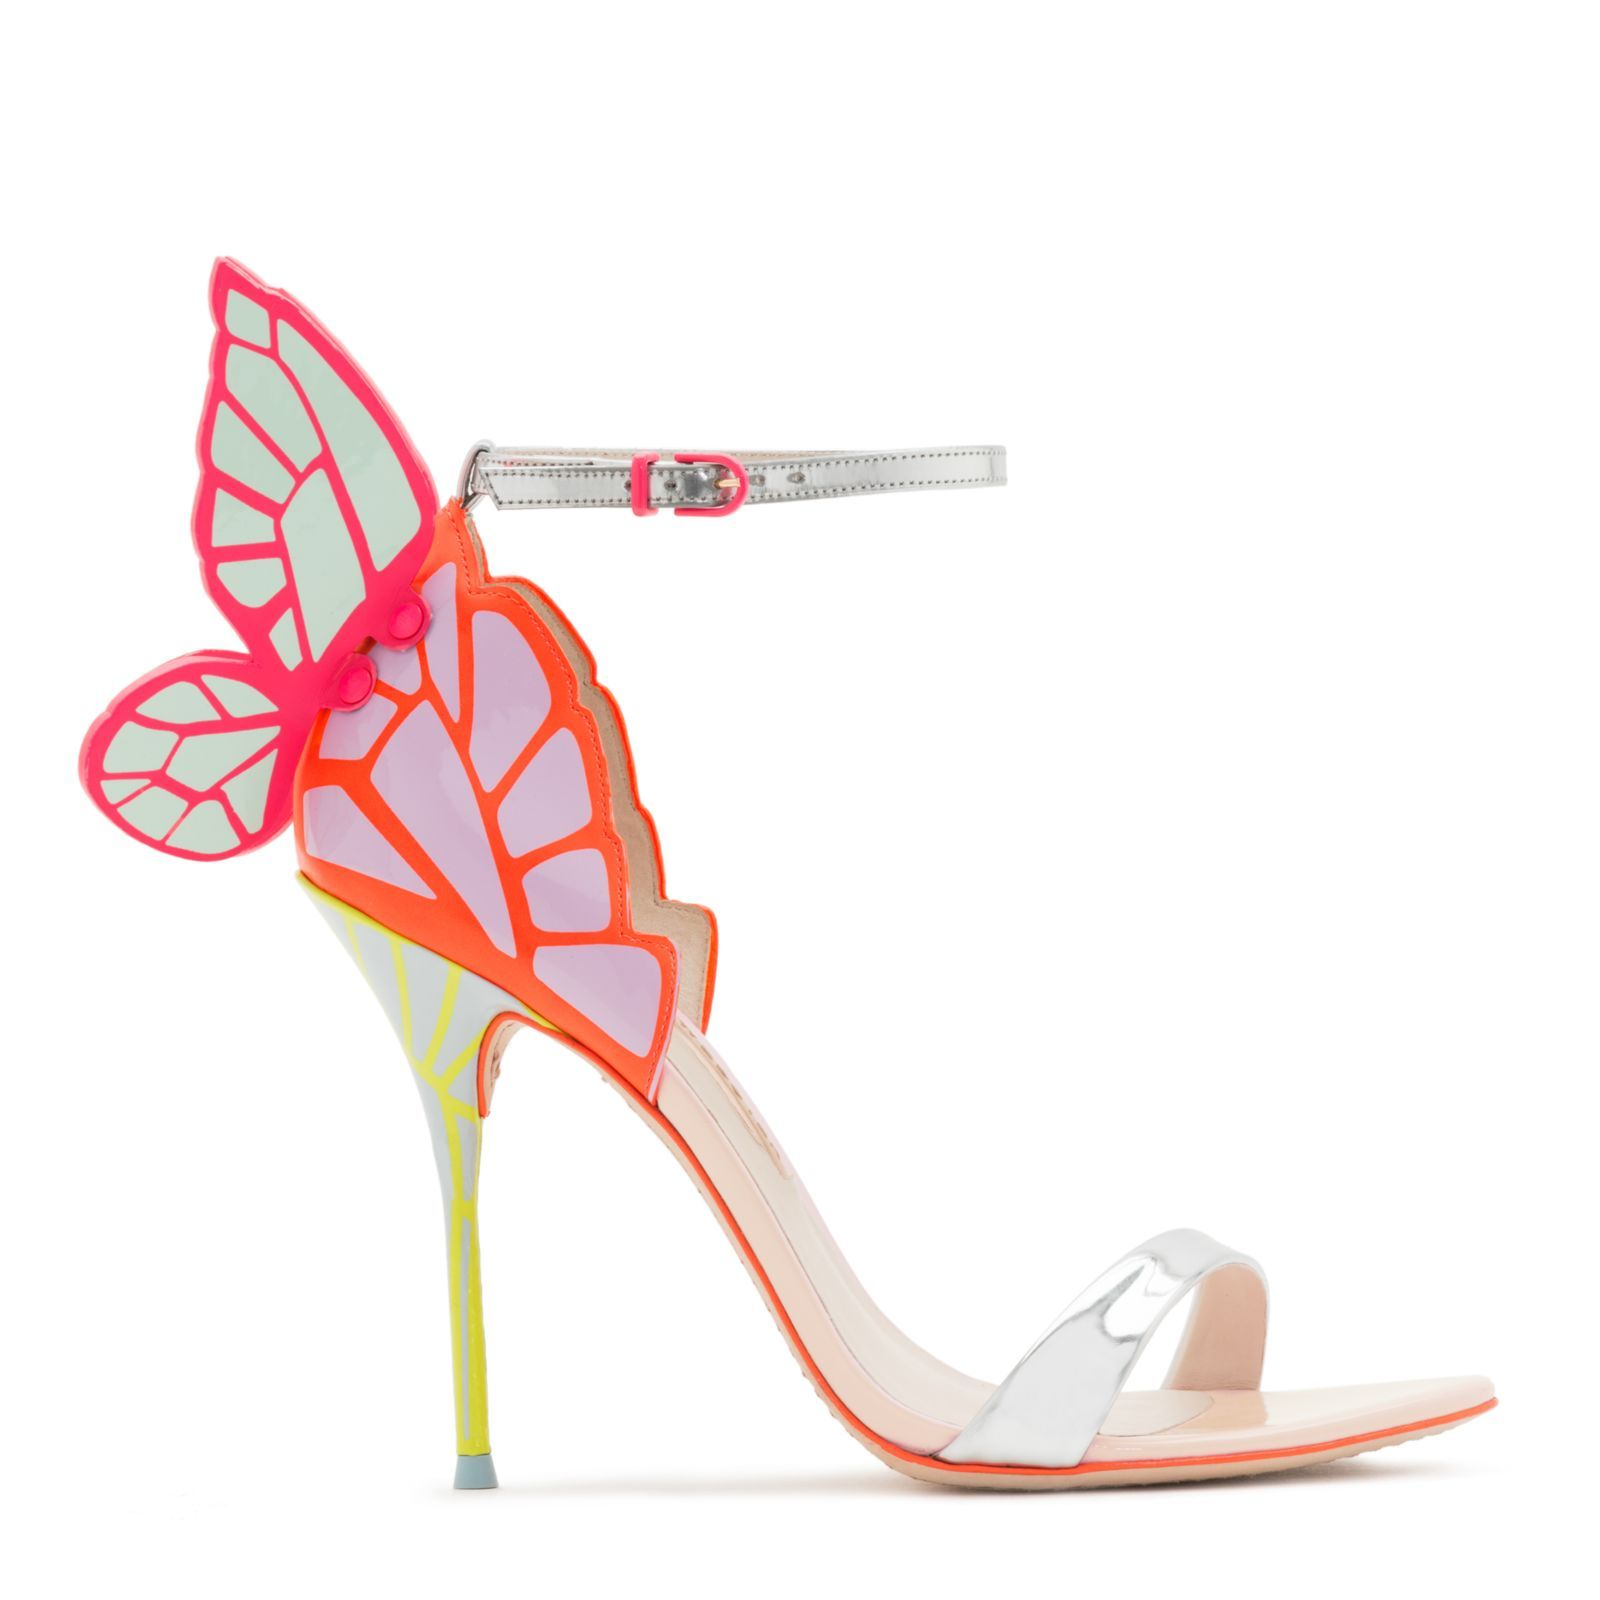 47af34e5a364c Welcome to the official Sophia Webster website. View the latest shoes